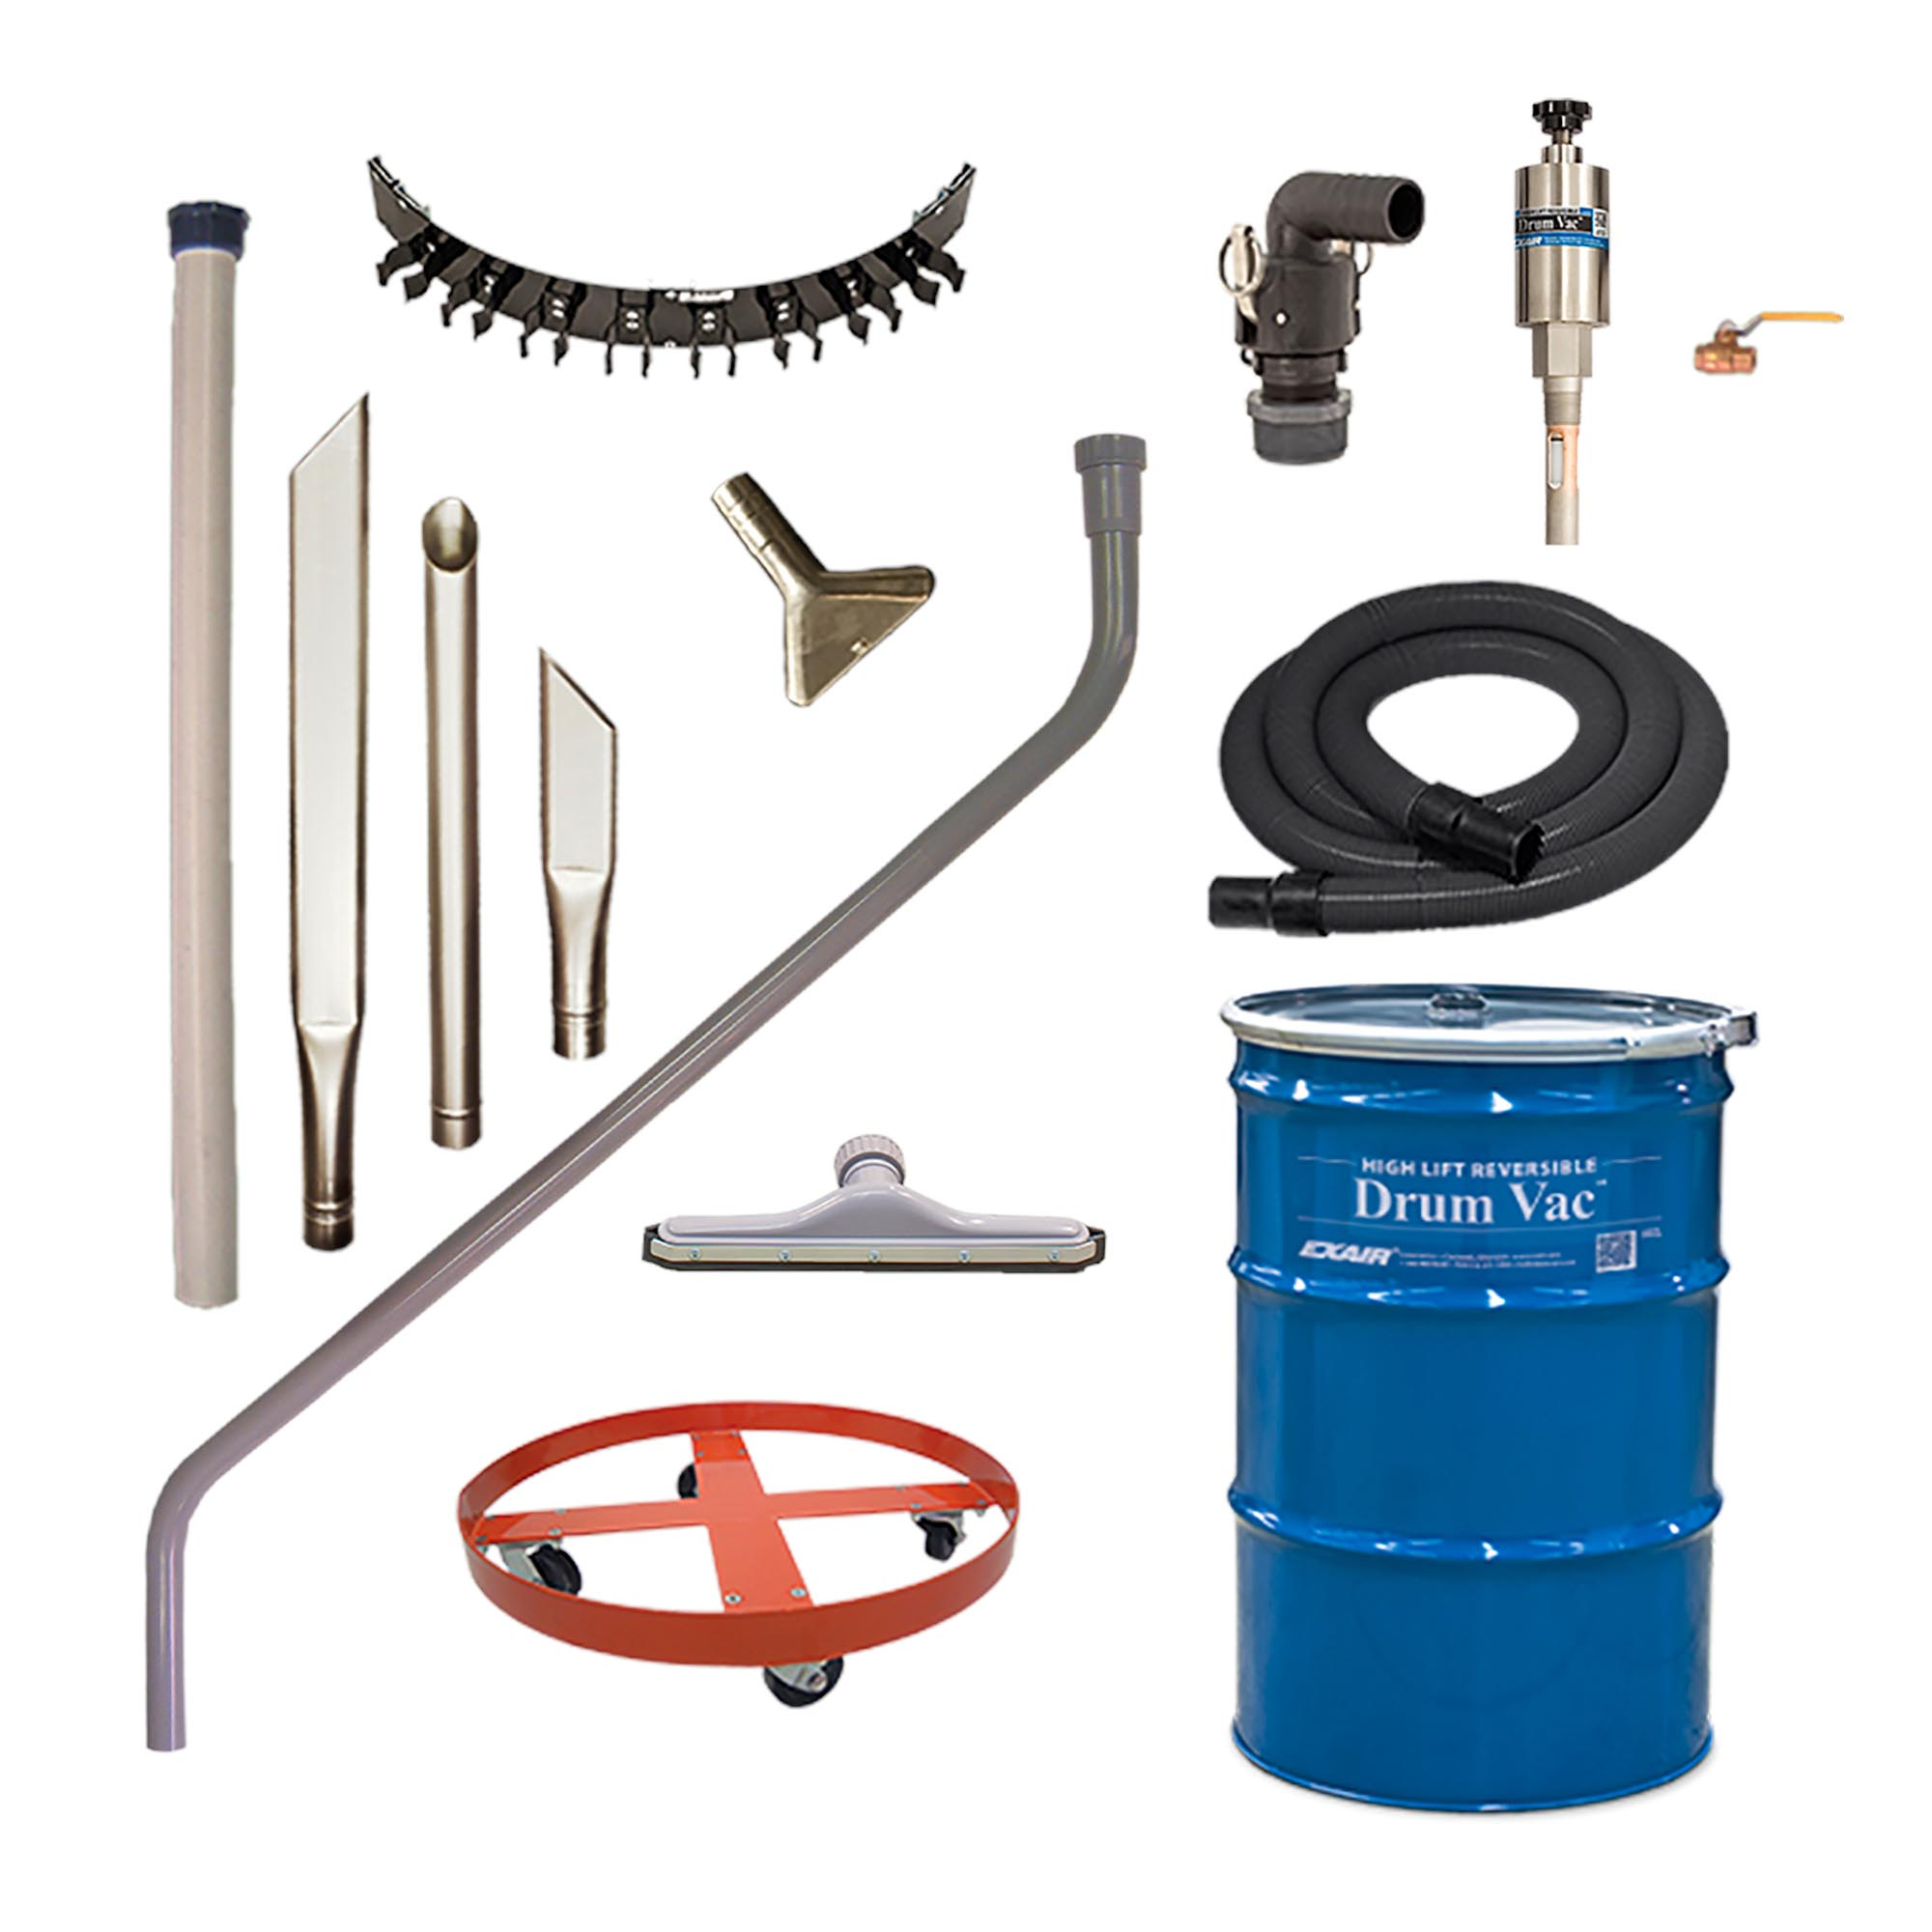 Premium High Lift Reversible Drum Vac Systems include the drum, pump, heavy duty tools, tool holder and all accessories.